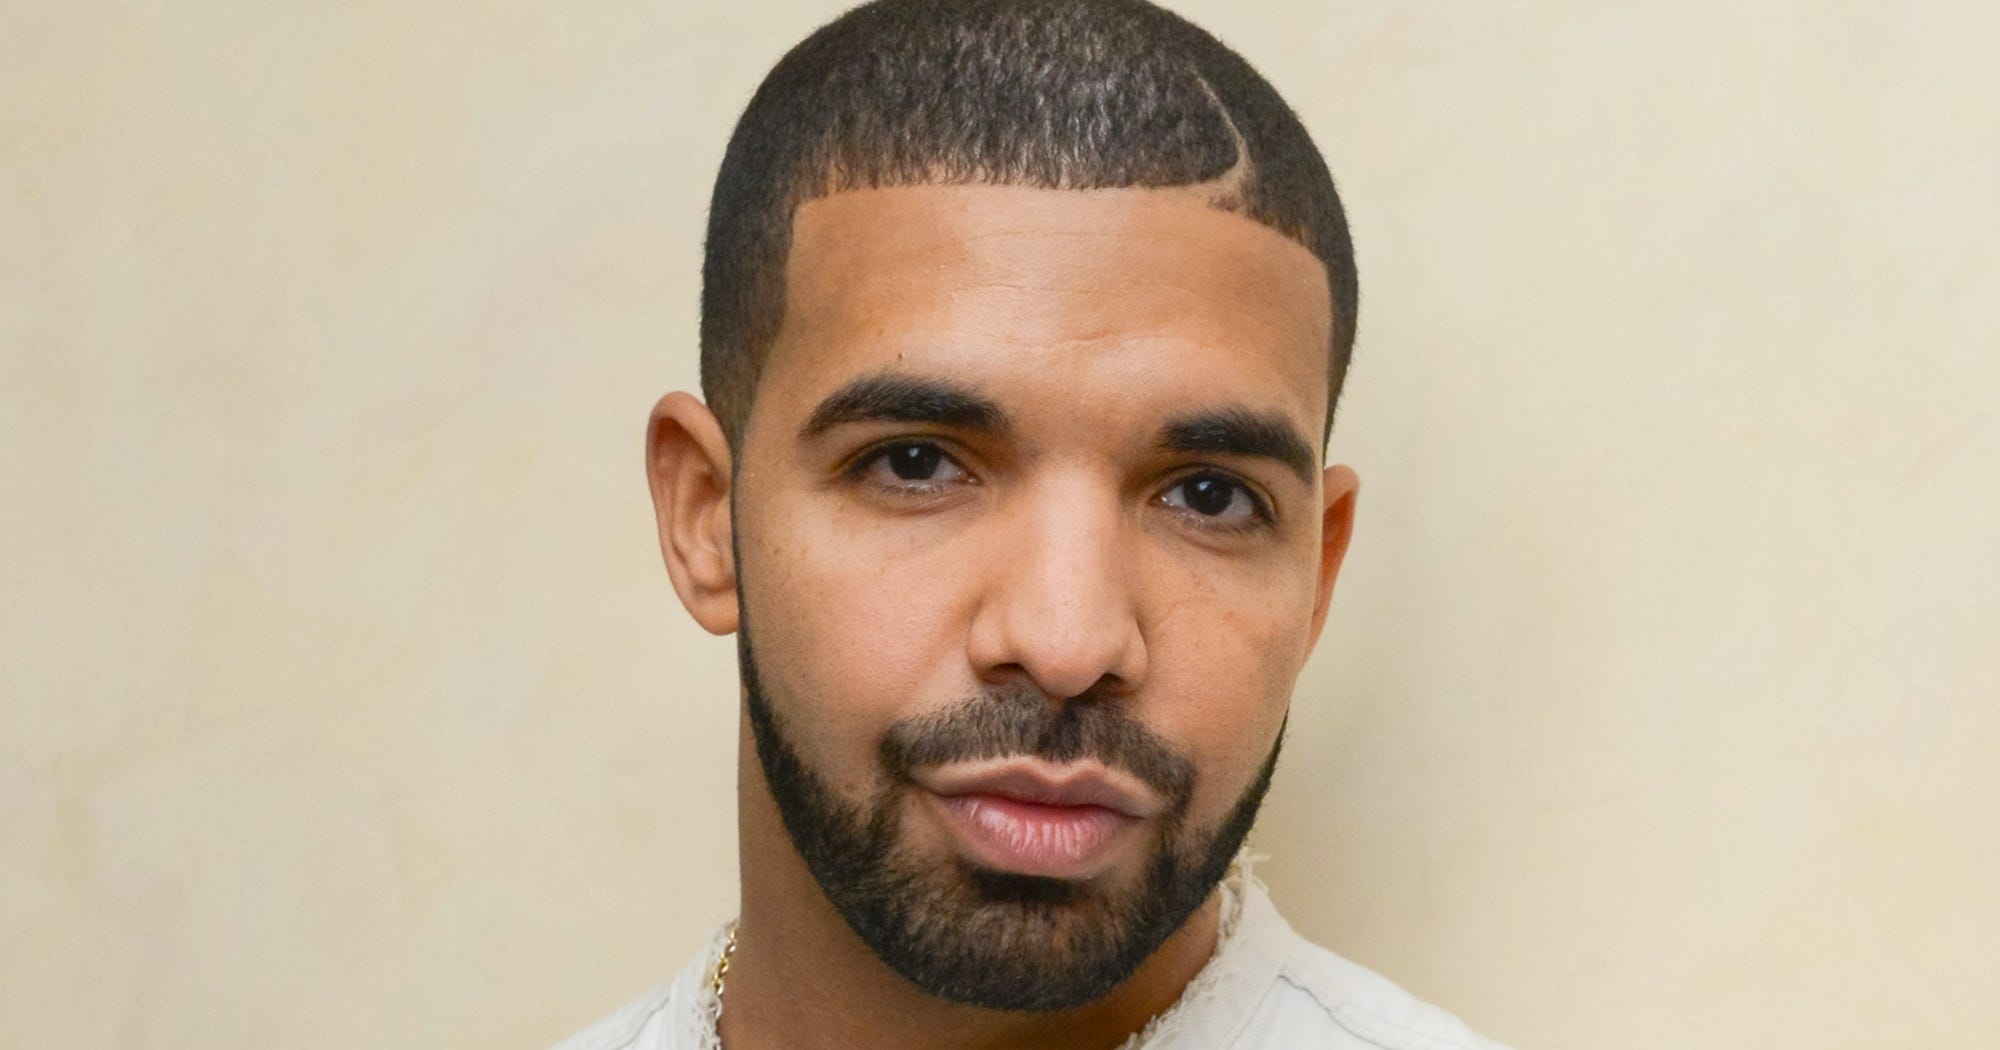 drake jewish girl personals Meet single women in drake co online & chat in the forums dhu is a 100% free dating site to find single women in drake.